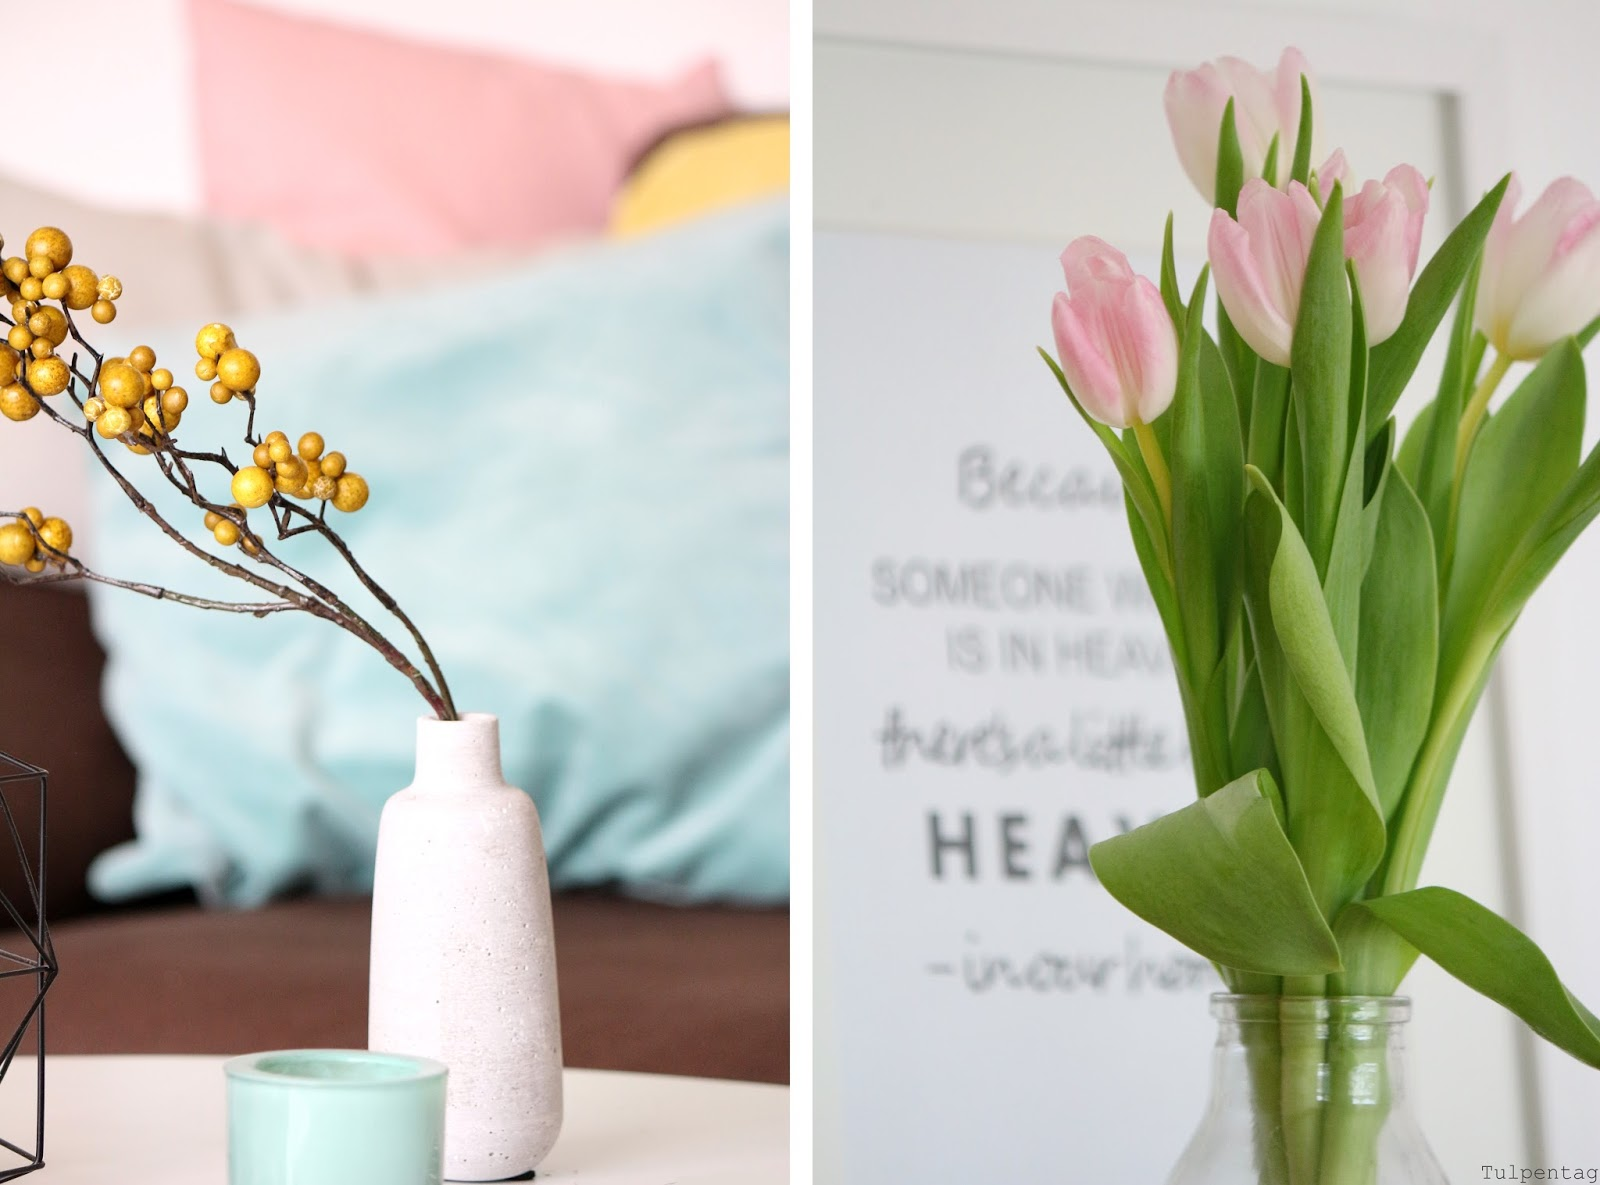 pastell deko und tulpen den fr hling ins haus holen tulpentag foodblog. Black Bedroom Furniture Sets. Home Design Ideas